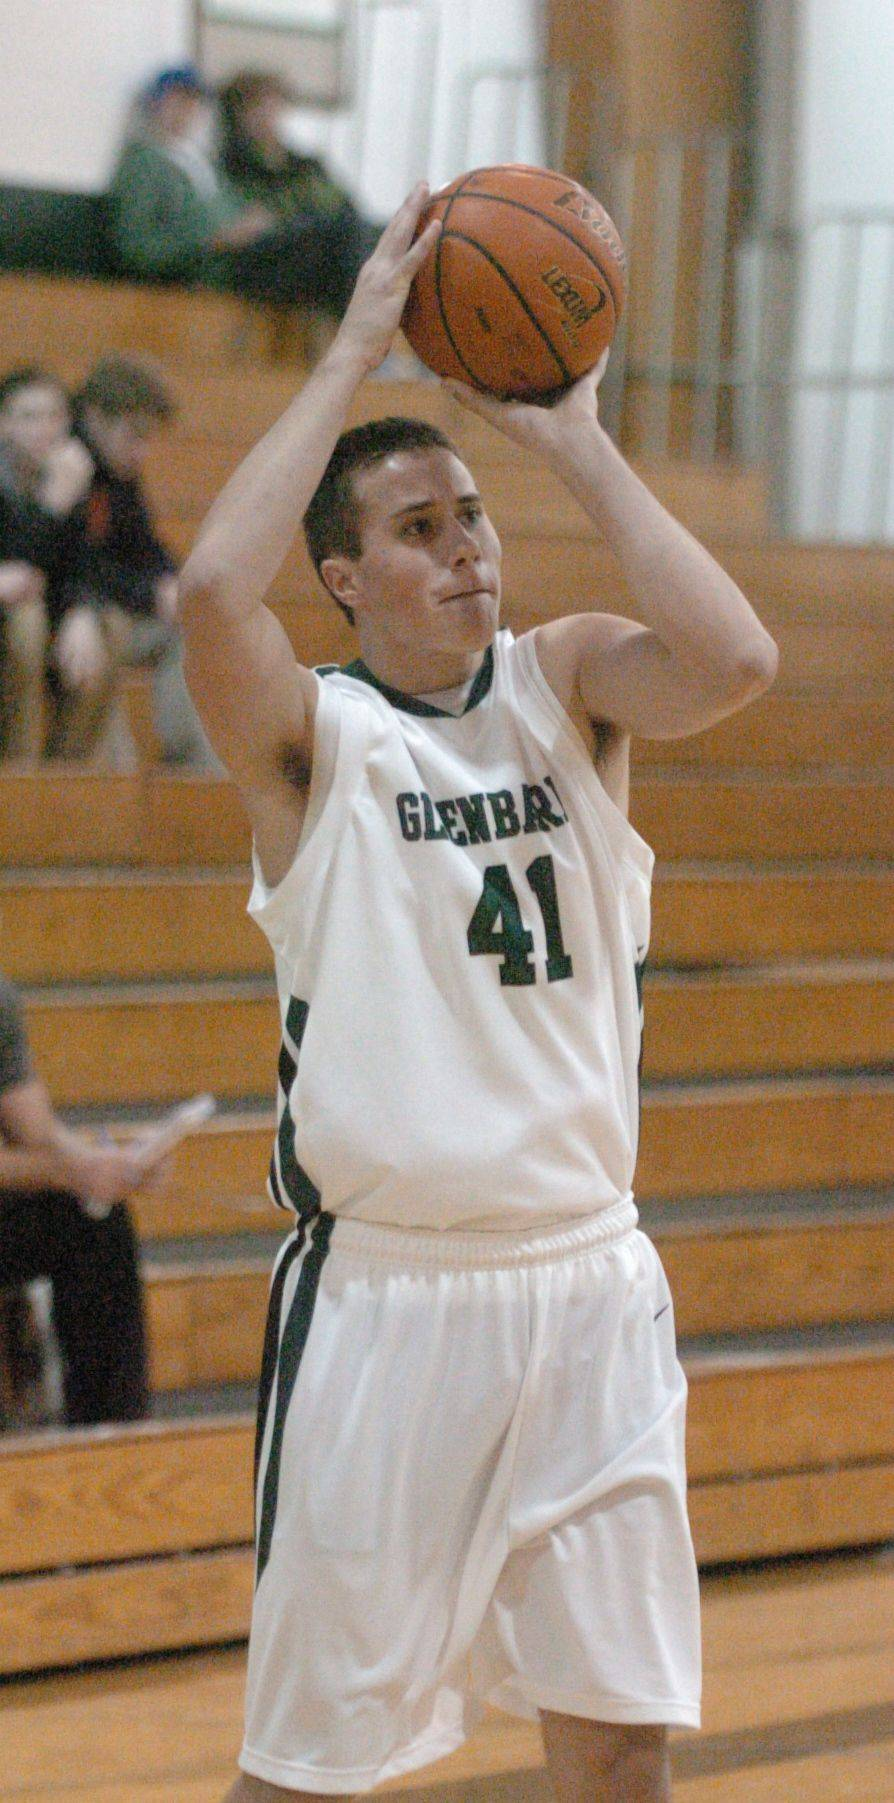 Images from the Fenton vs. Glenbard West boys basketball game on Tuesday, December 21, 2010.